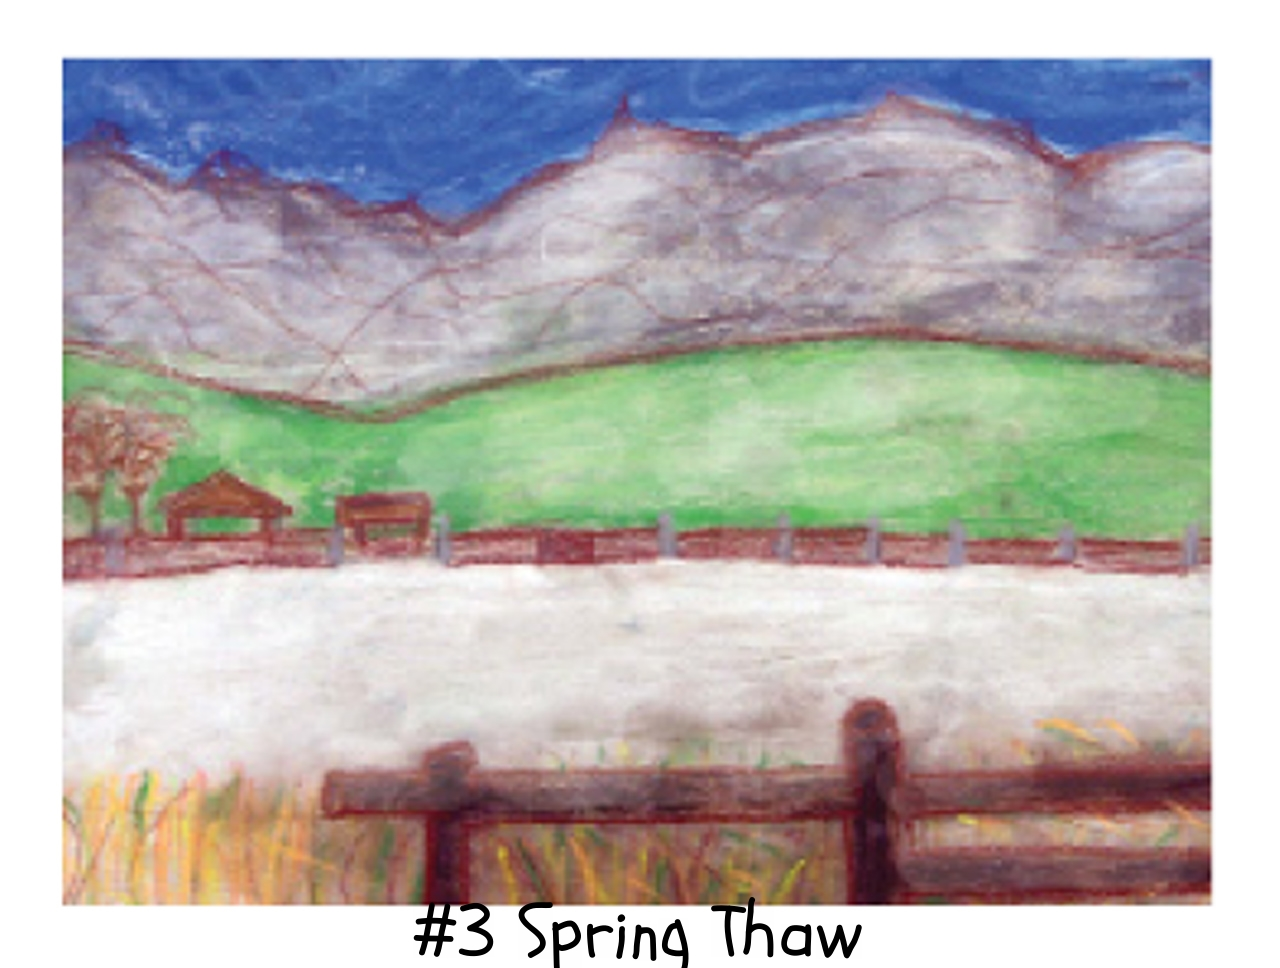 #3 Spring Thaw - Terry Walkden.jpg